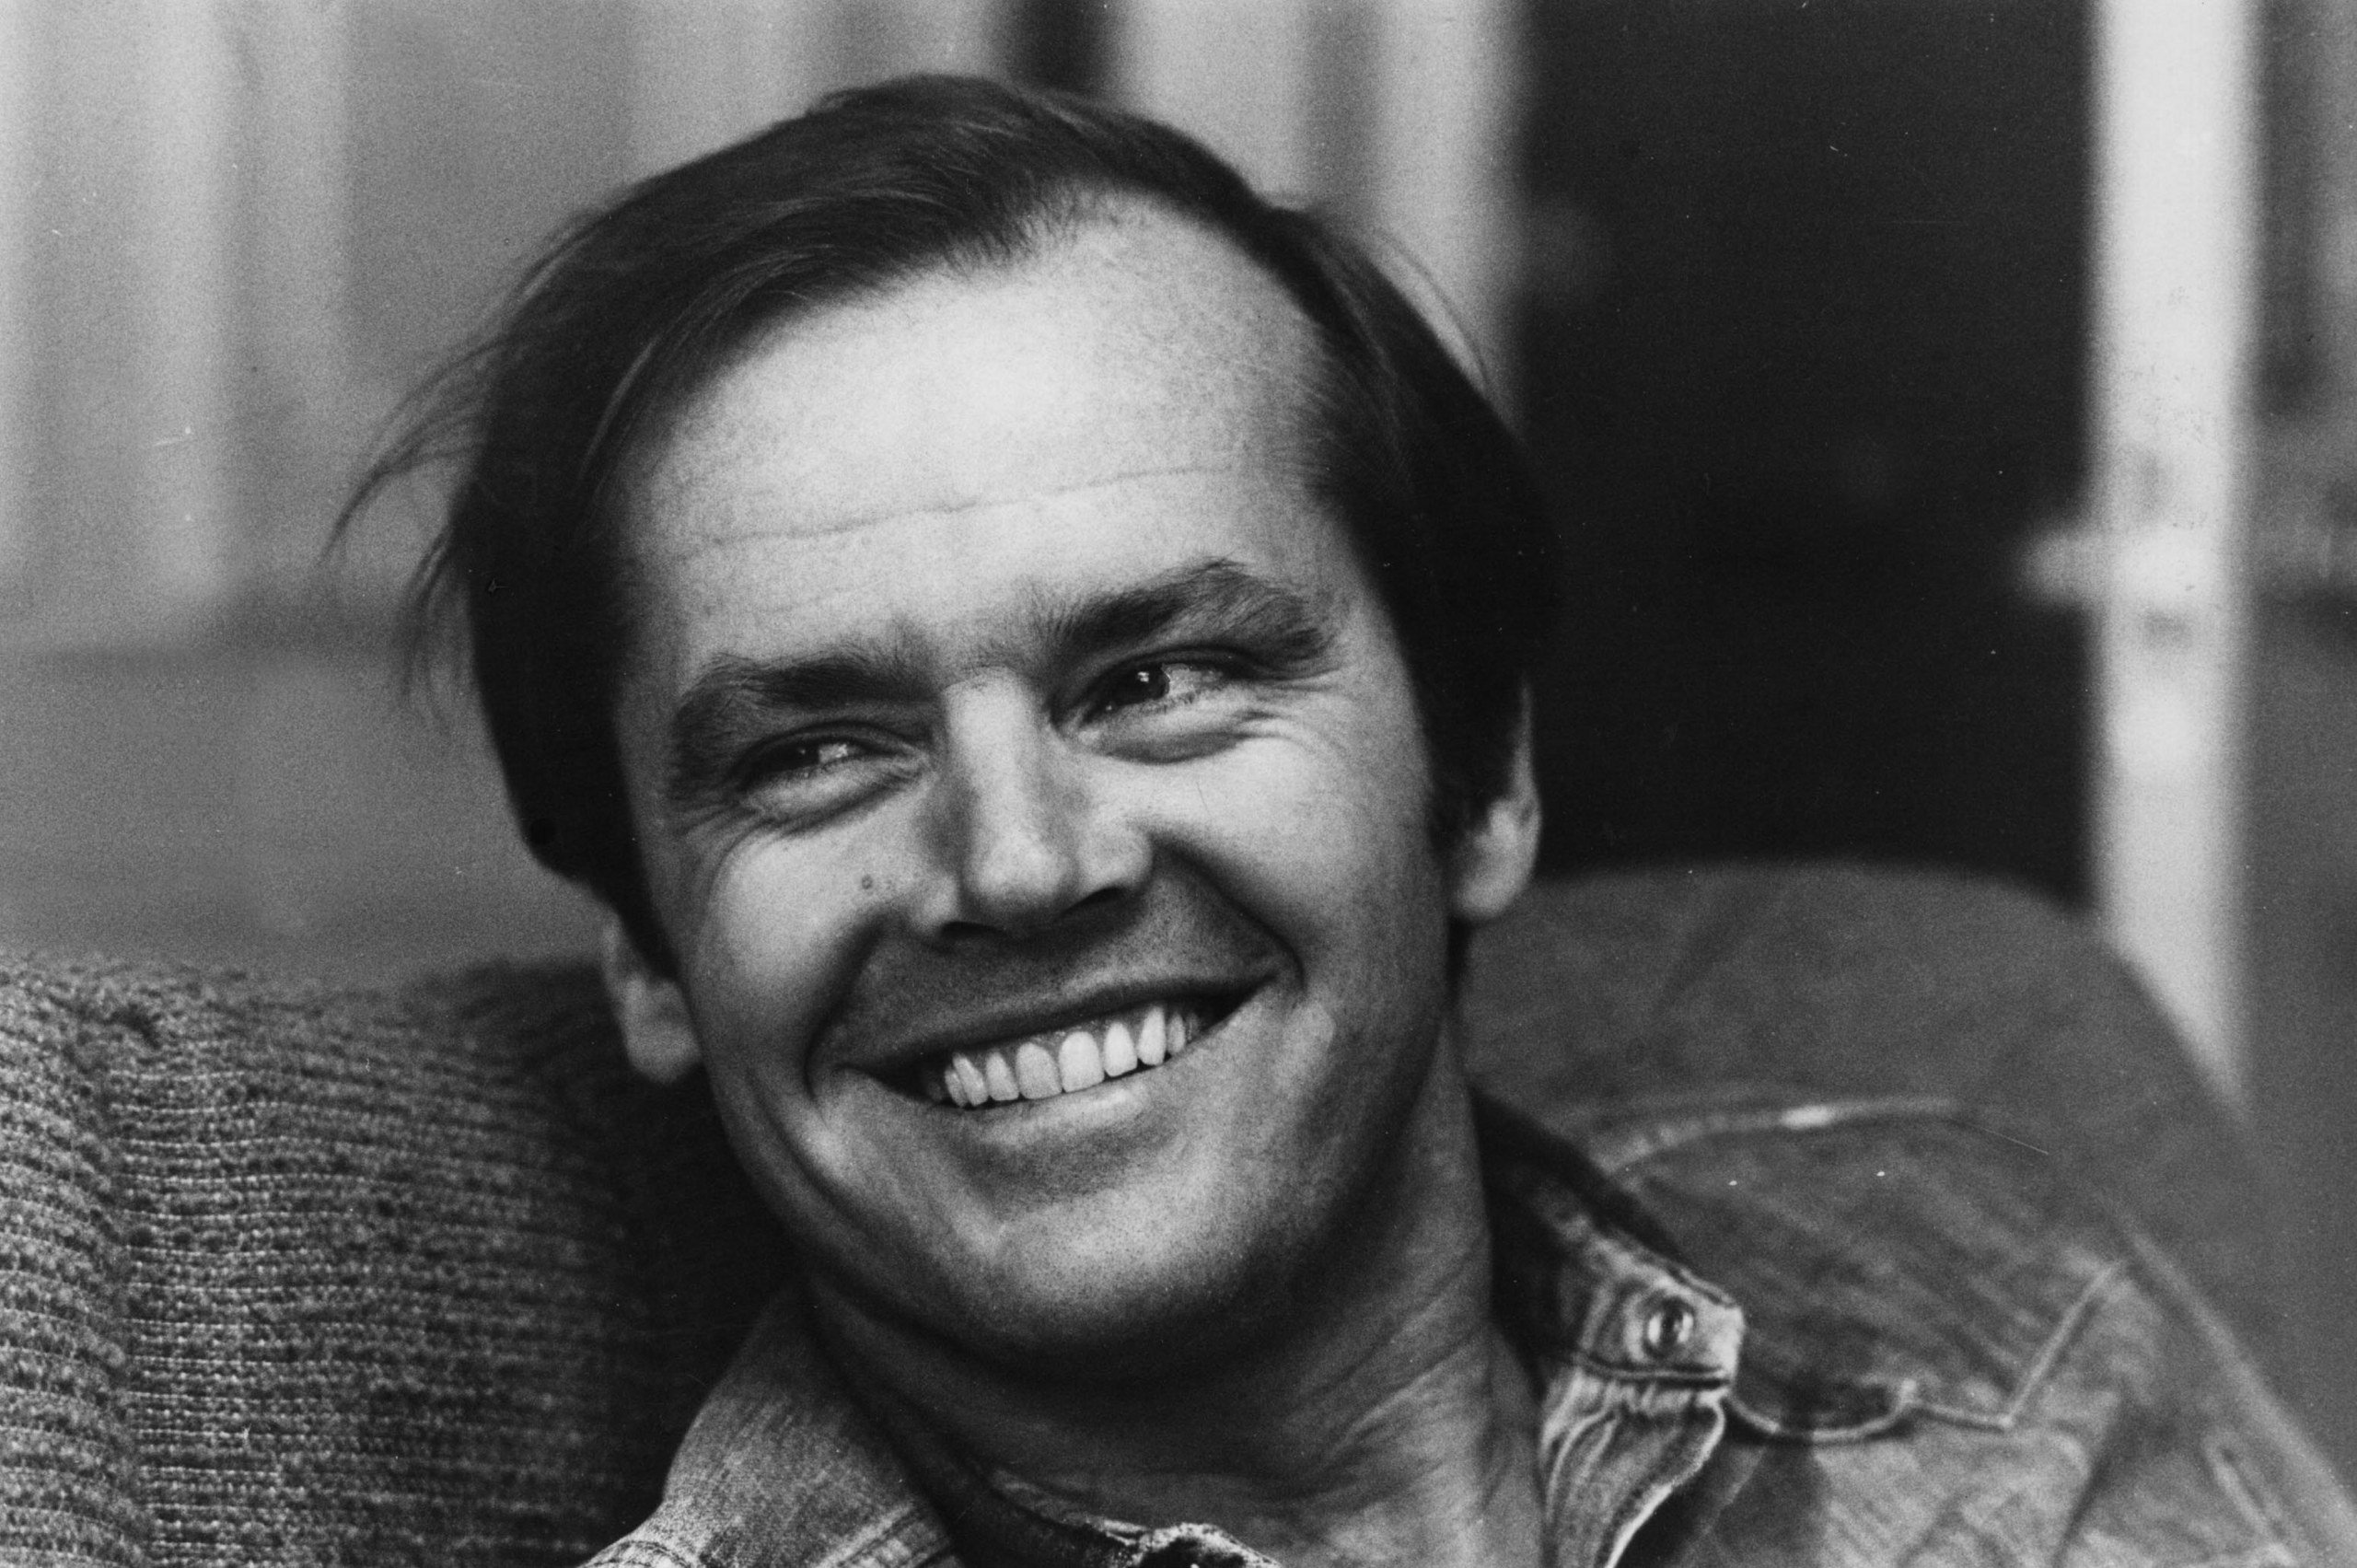 jack nicholson 4k widescreen desktop wallpaper 1321